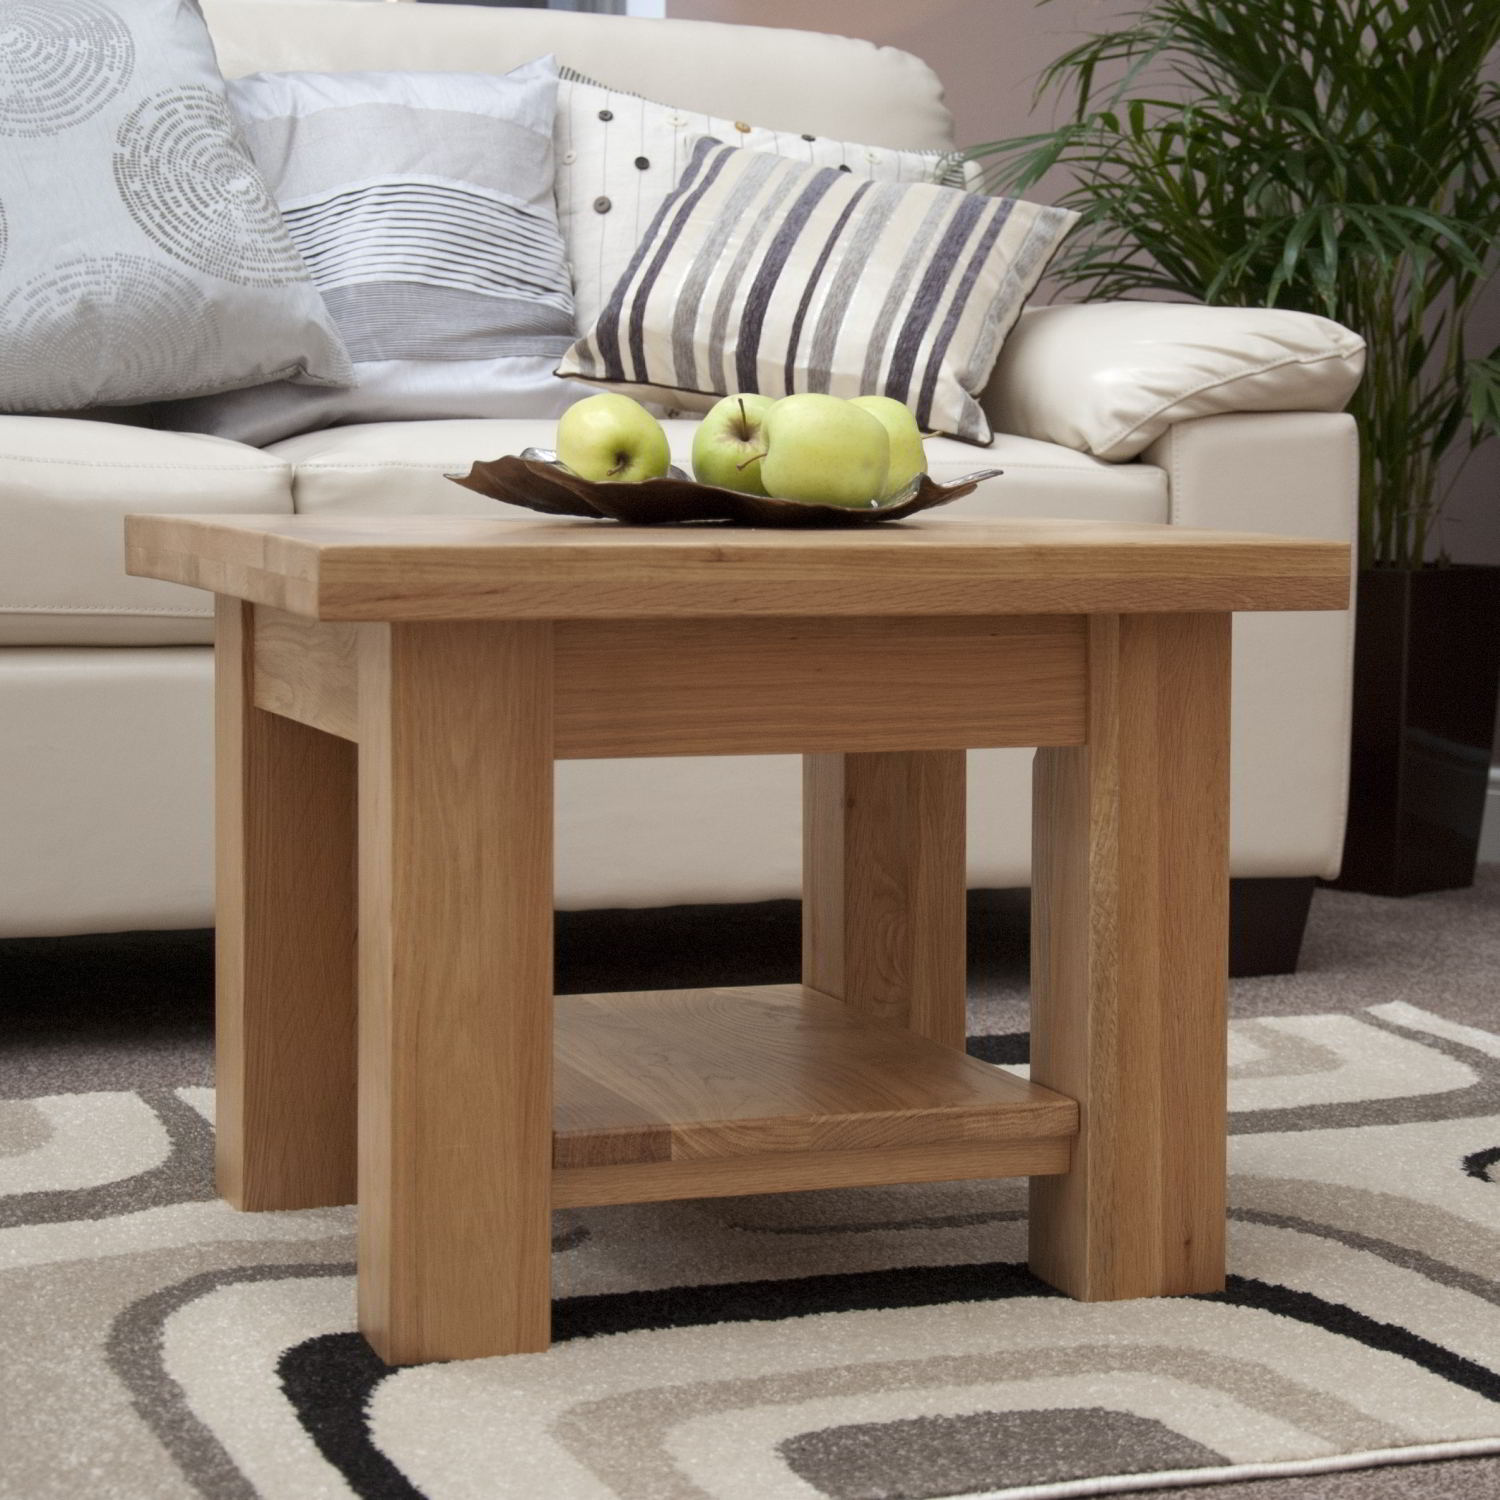 Coffee Tables Living Room: Kingston Solid Oak Living Room Lounge Furniture Small